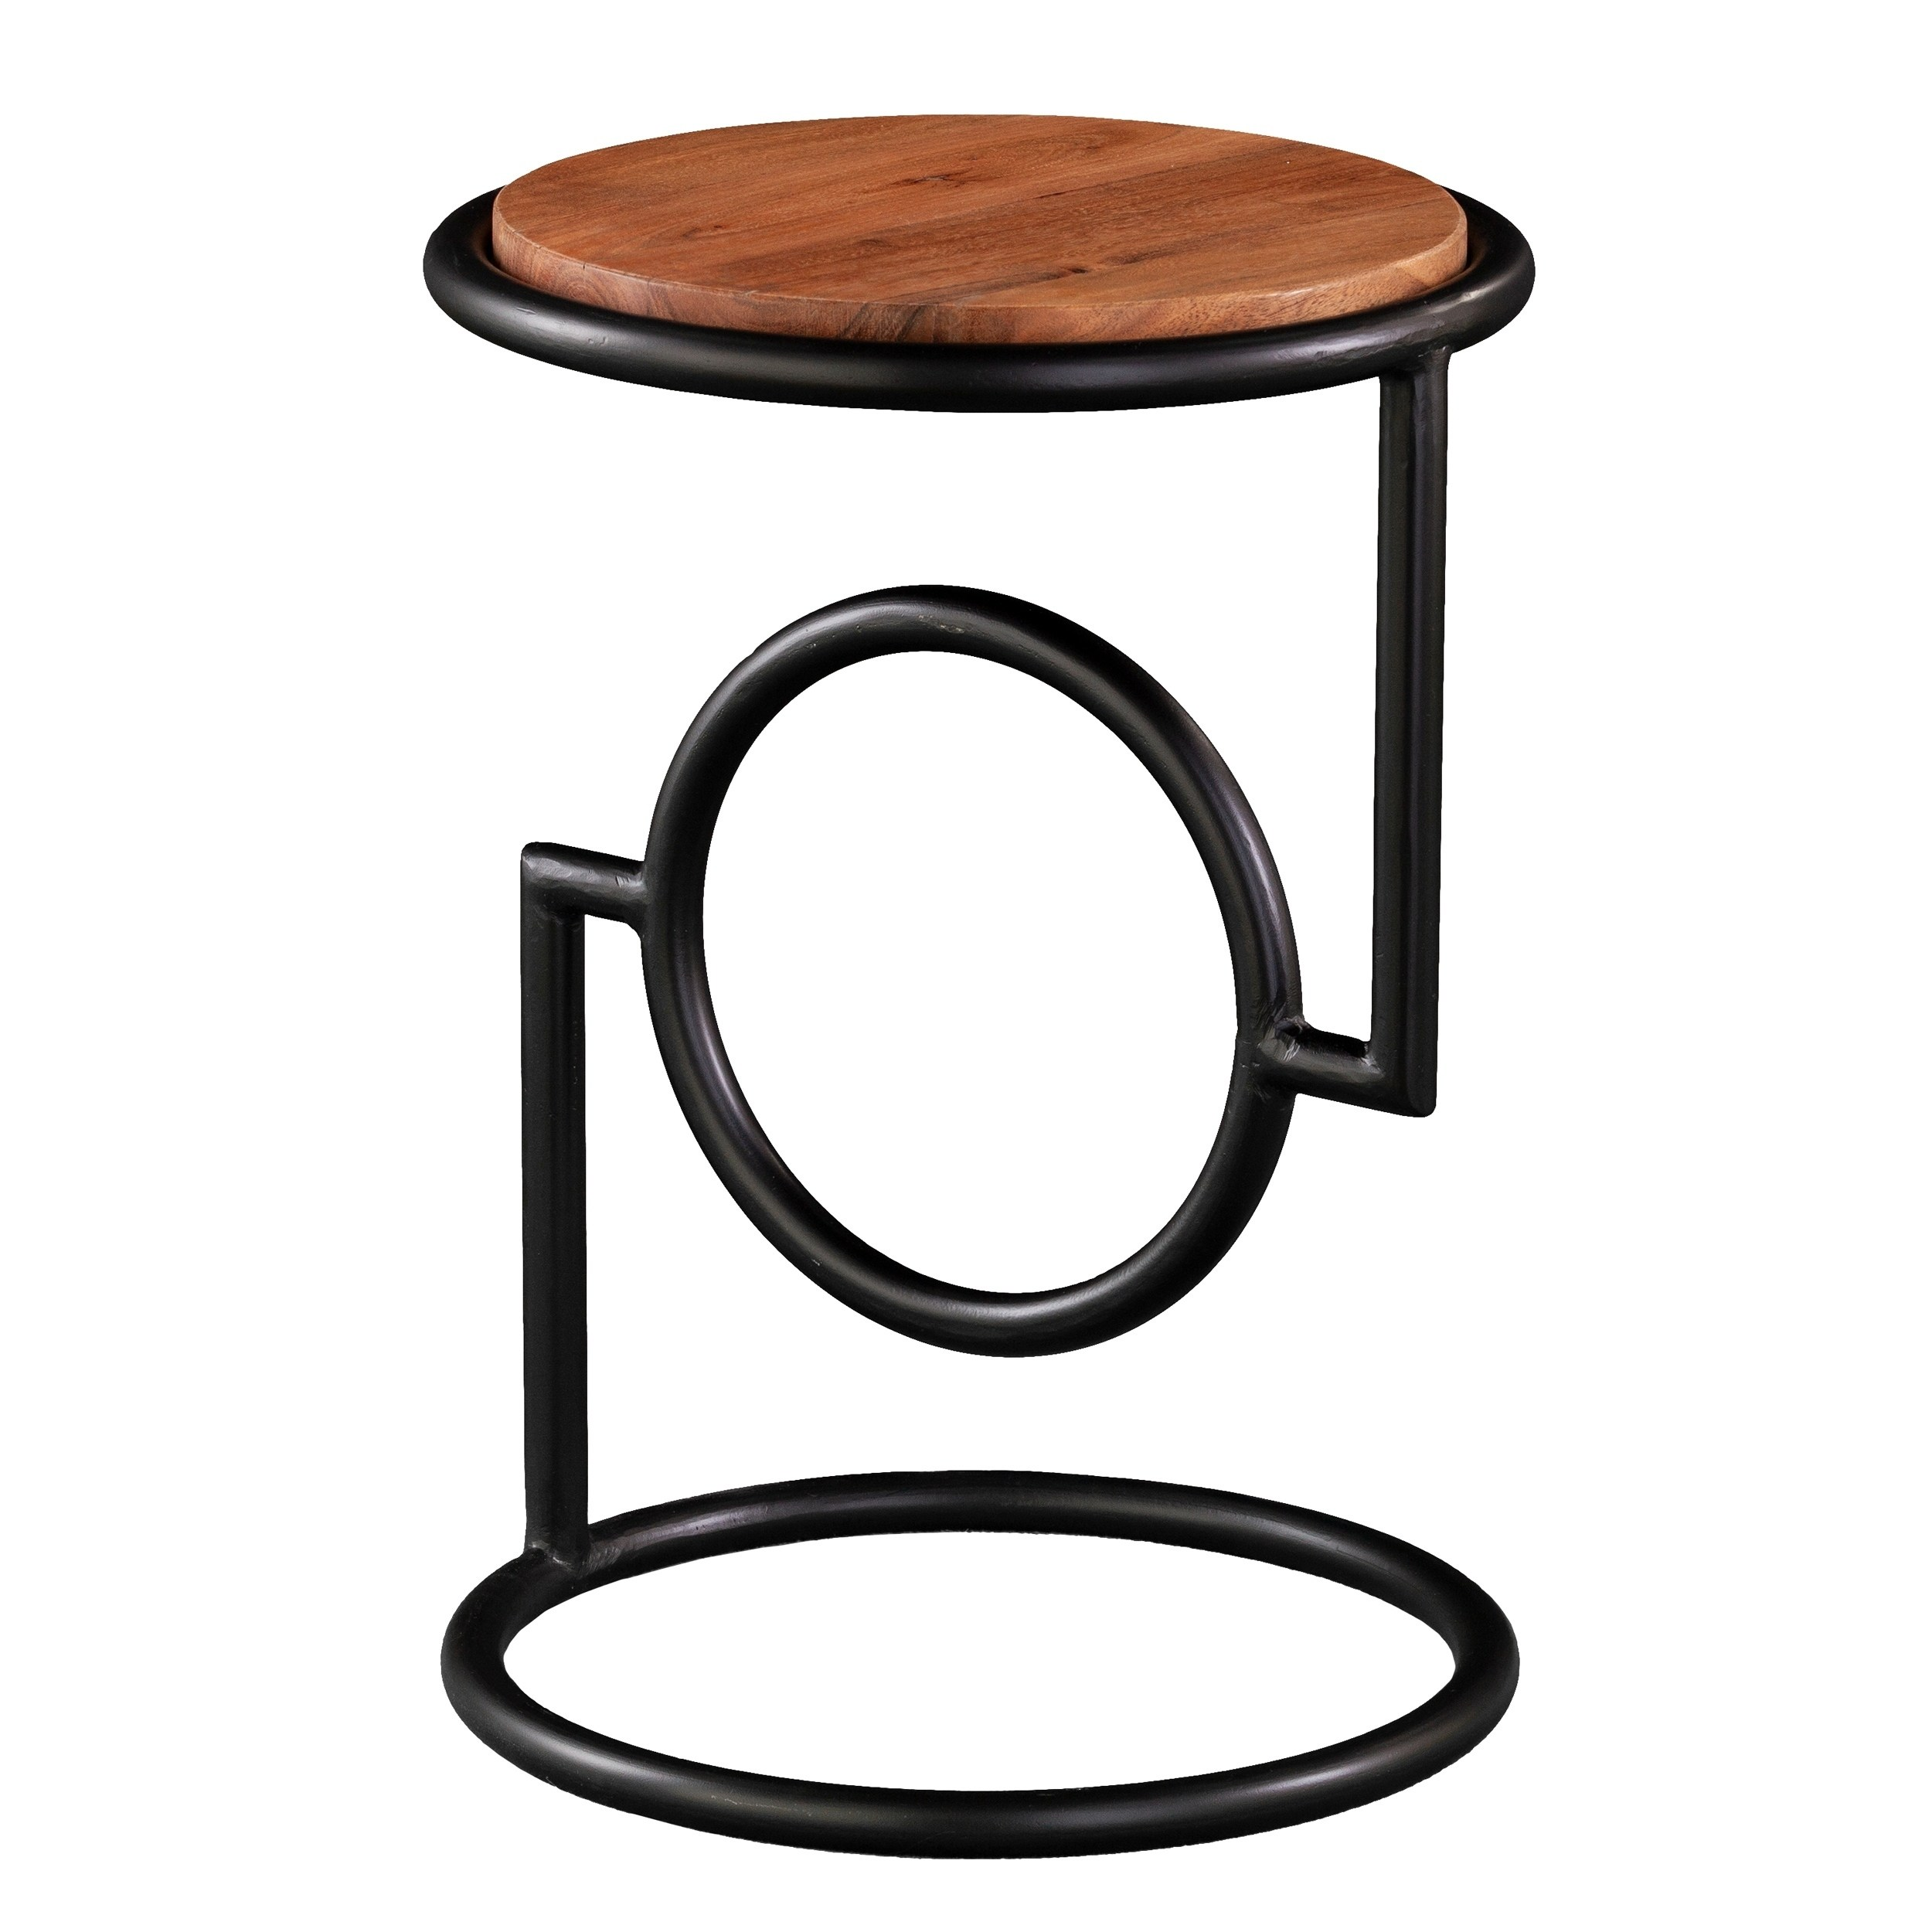 harper blvd bera round accent table mango wood top free shipping today outside patio mats and coasters iron company adjustable height side drum chairs with back modern crystal